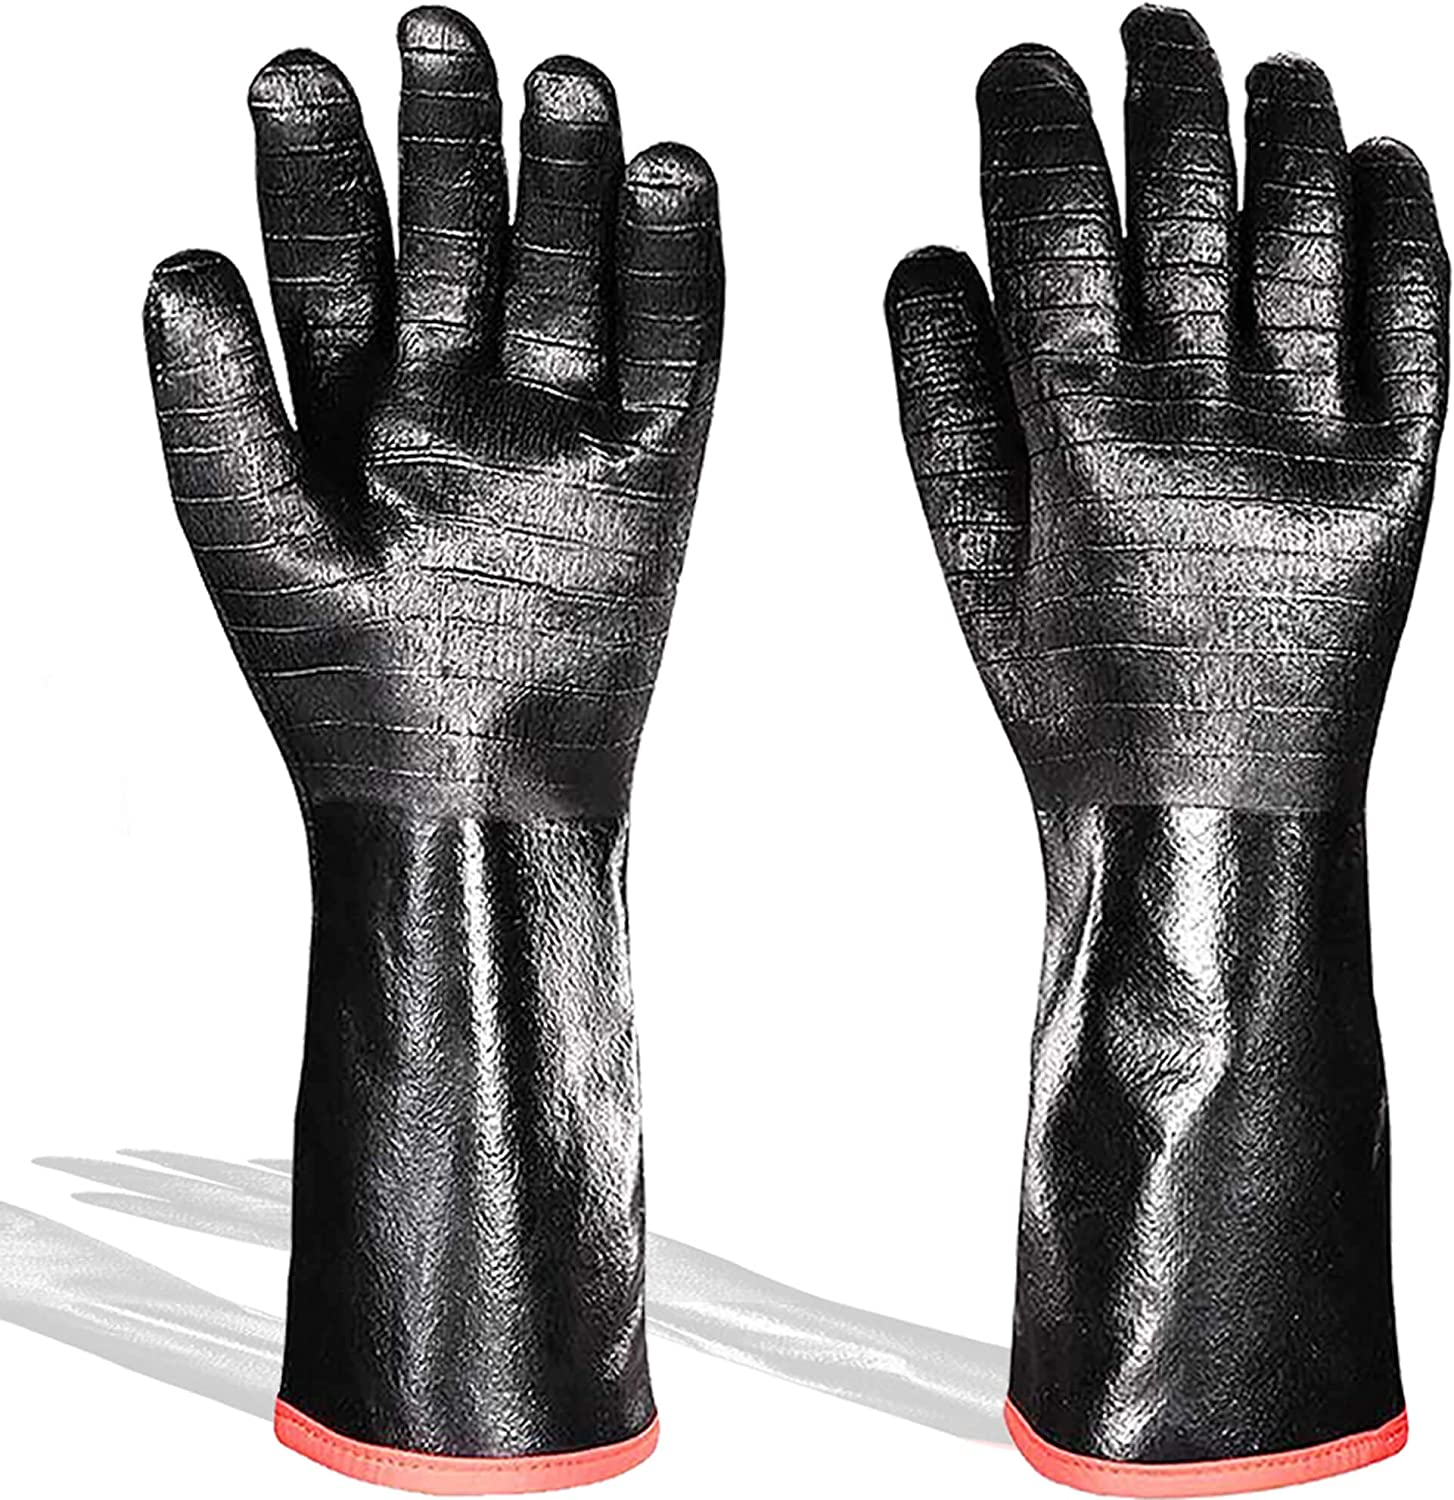 BBQ Gloves 14 Inches Cooking Barbecue Gloves, 932℉, Waterproof, Fireproof, Heat Resistant-Smoker, Oven Mitts, Oil Resistant Grill Gloves for Heat Food Right on Fryer, Welding, Baking Neoprene Coating